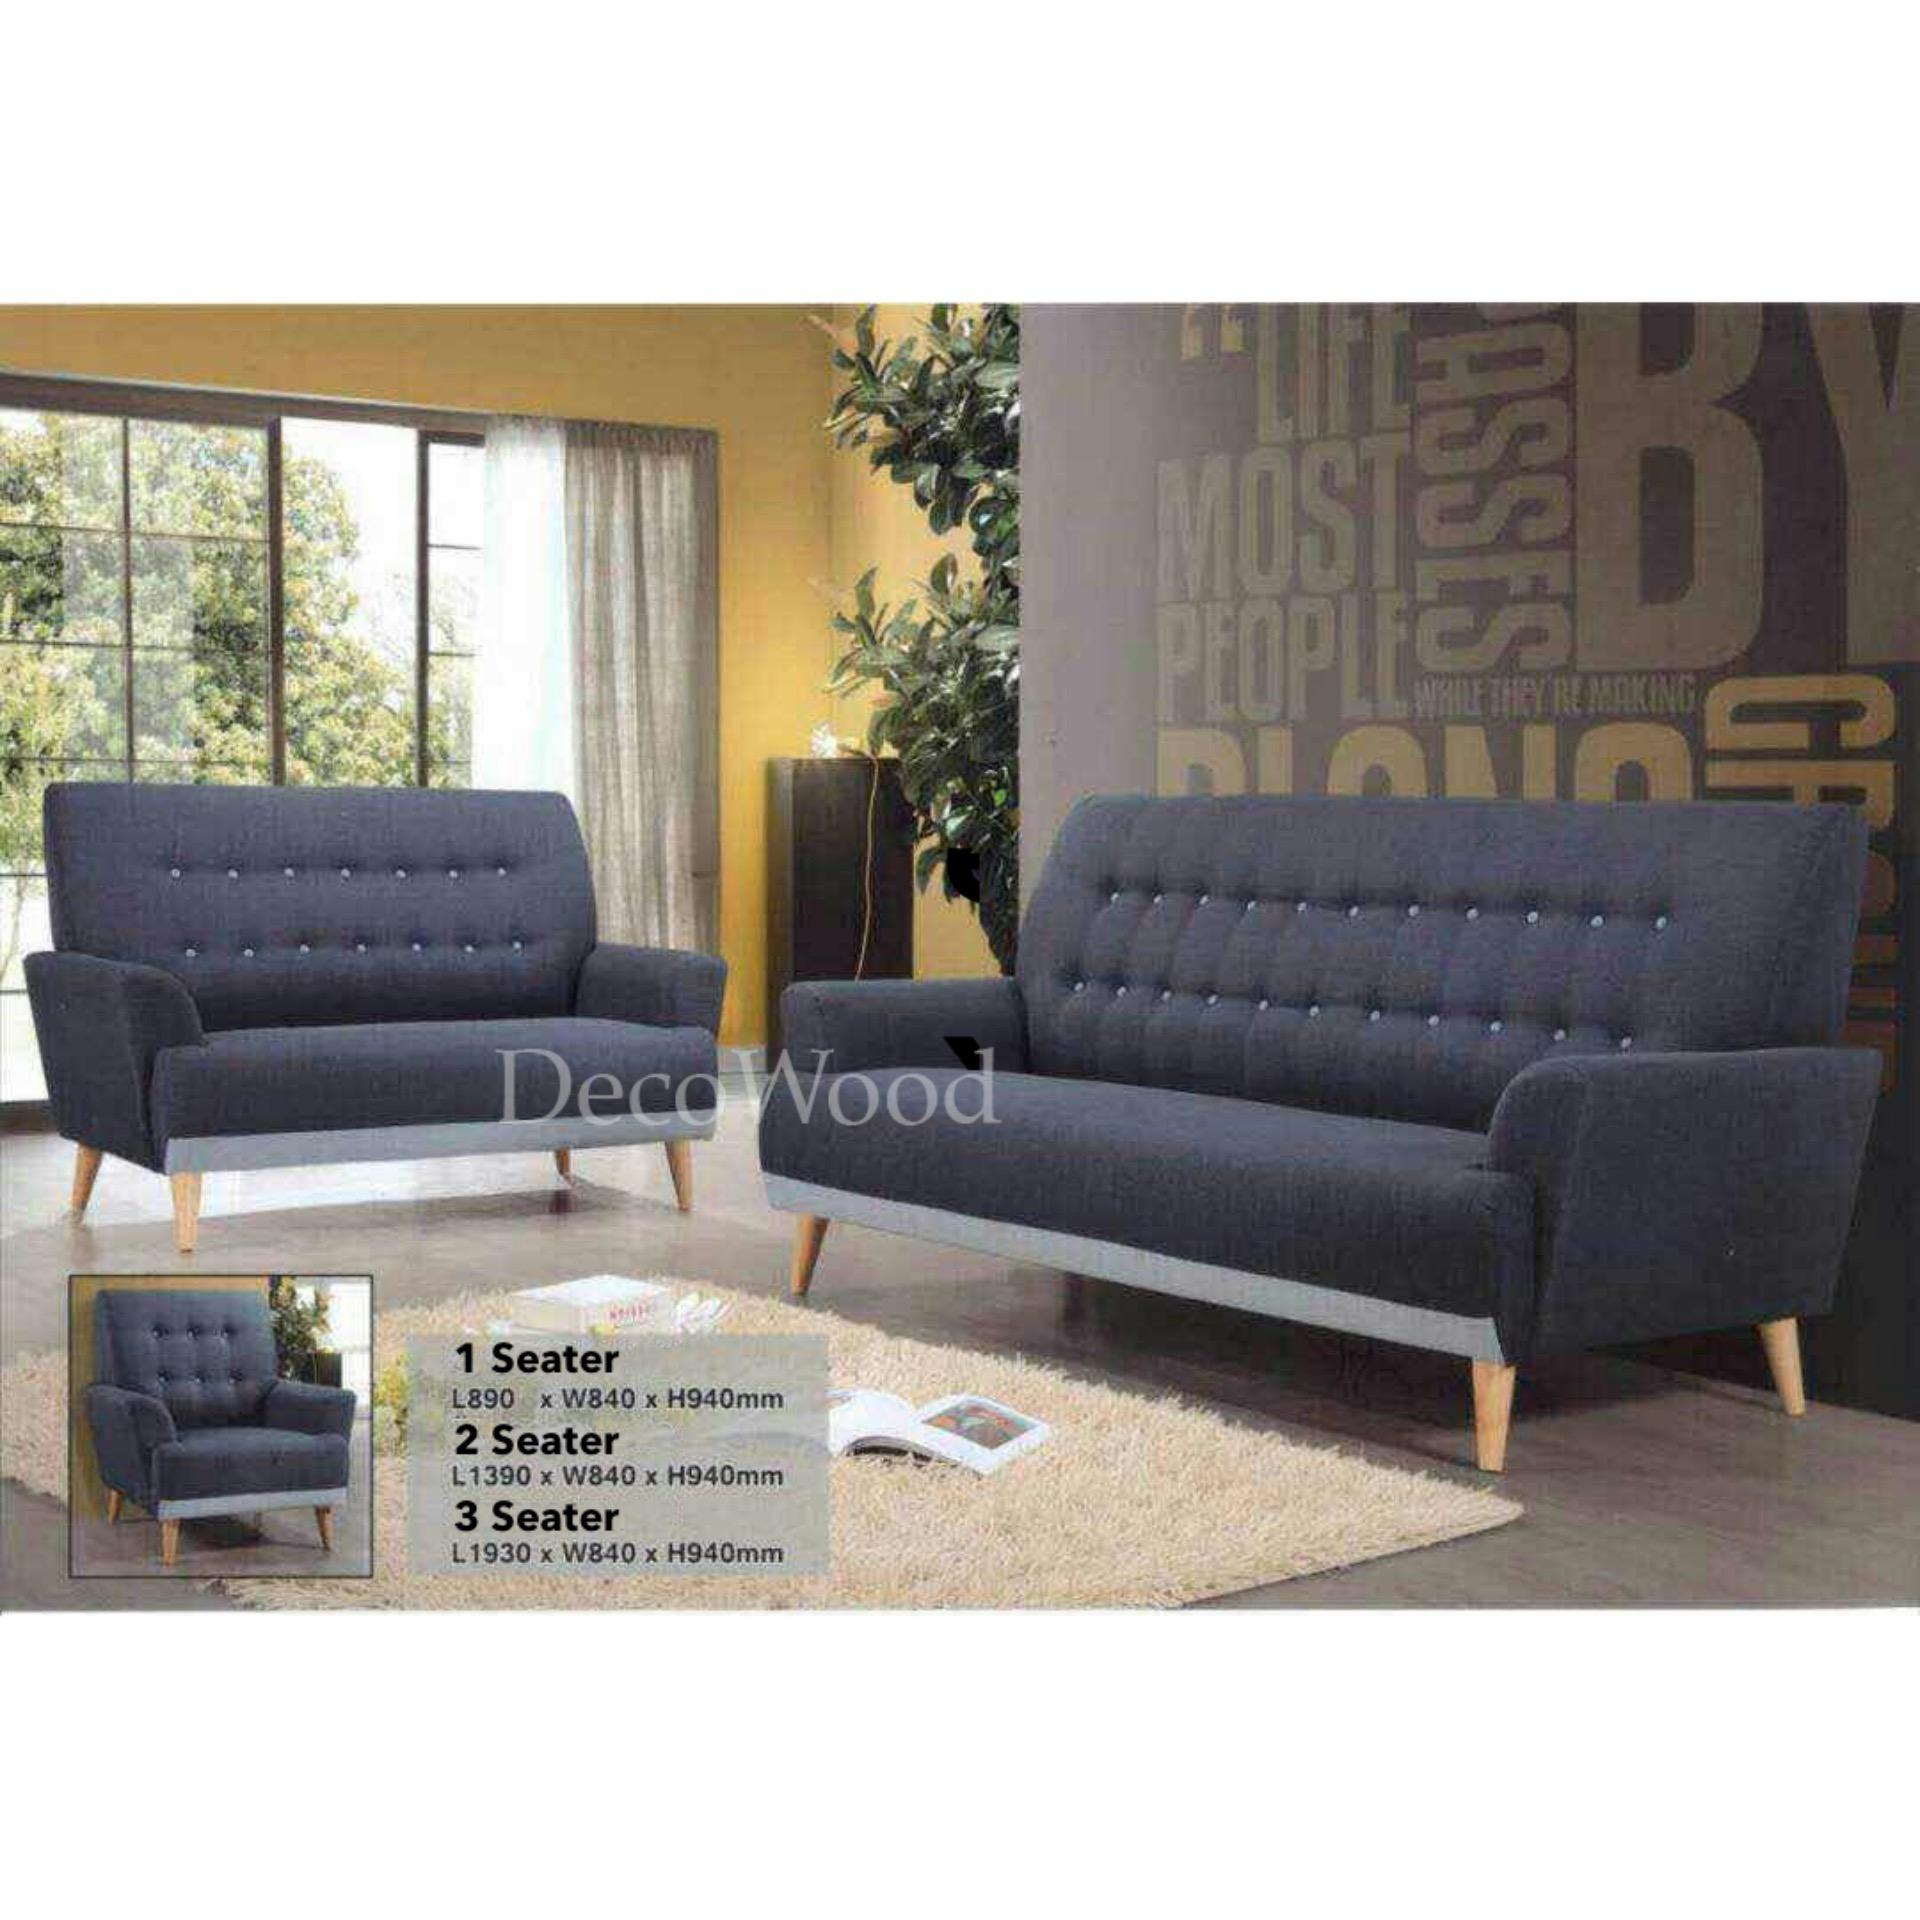 Excellent Sofa Set 2 3 Seater Fully Fabric Sofa Lounge Chair Relax Sofa Fabric Dailytribune Chair Design For Home Dailytribuneorg